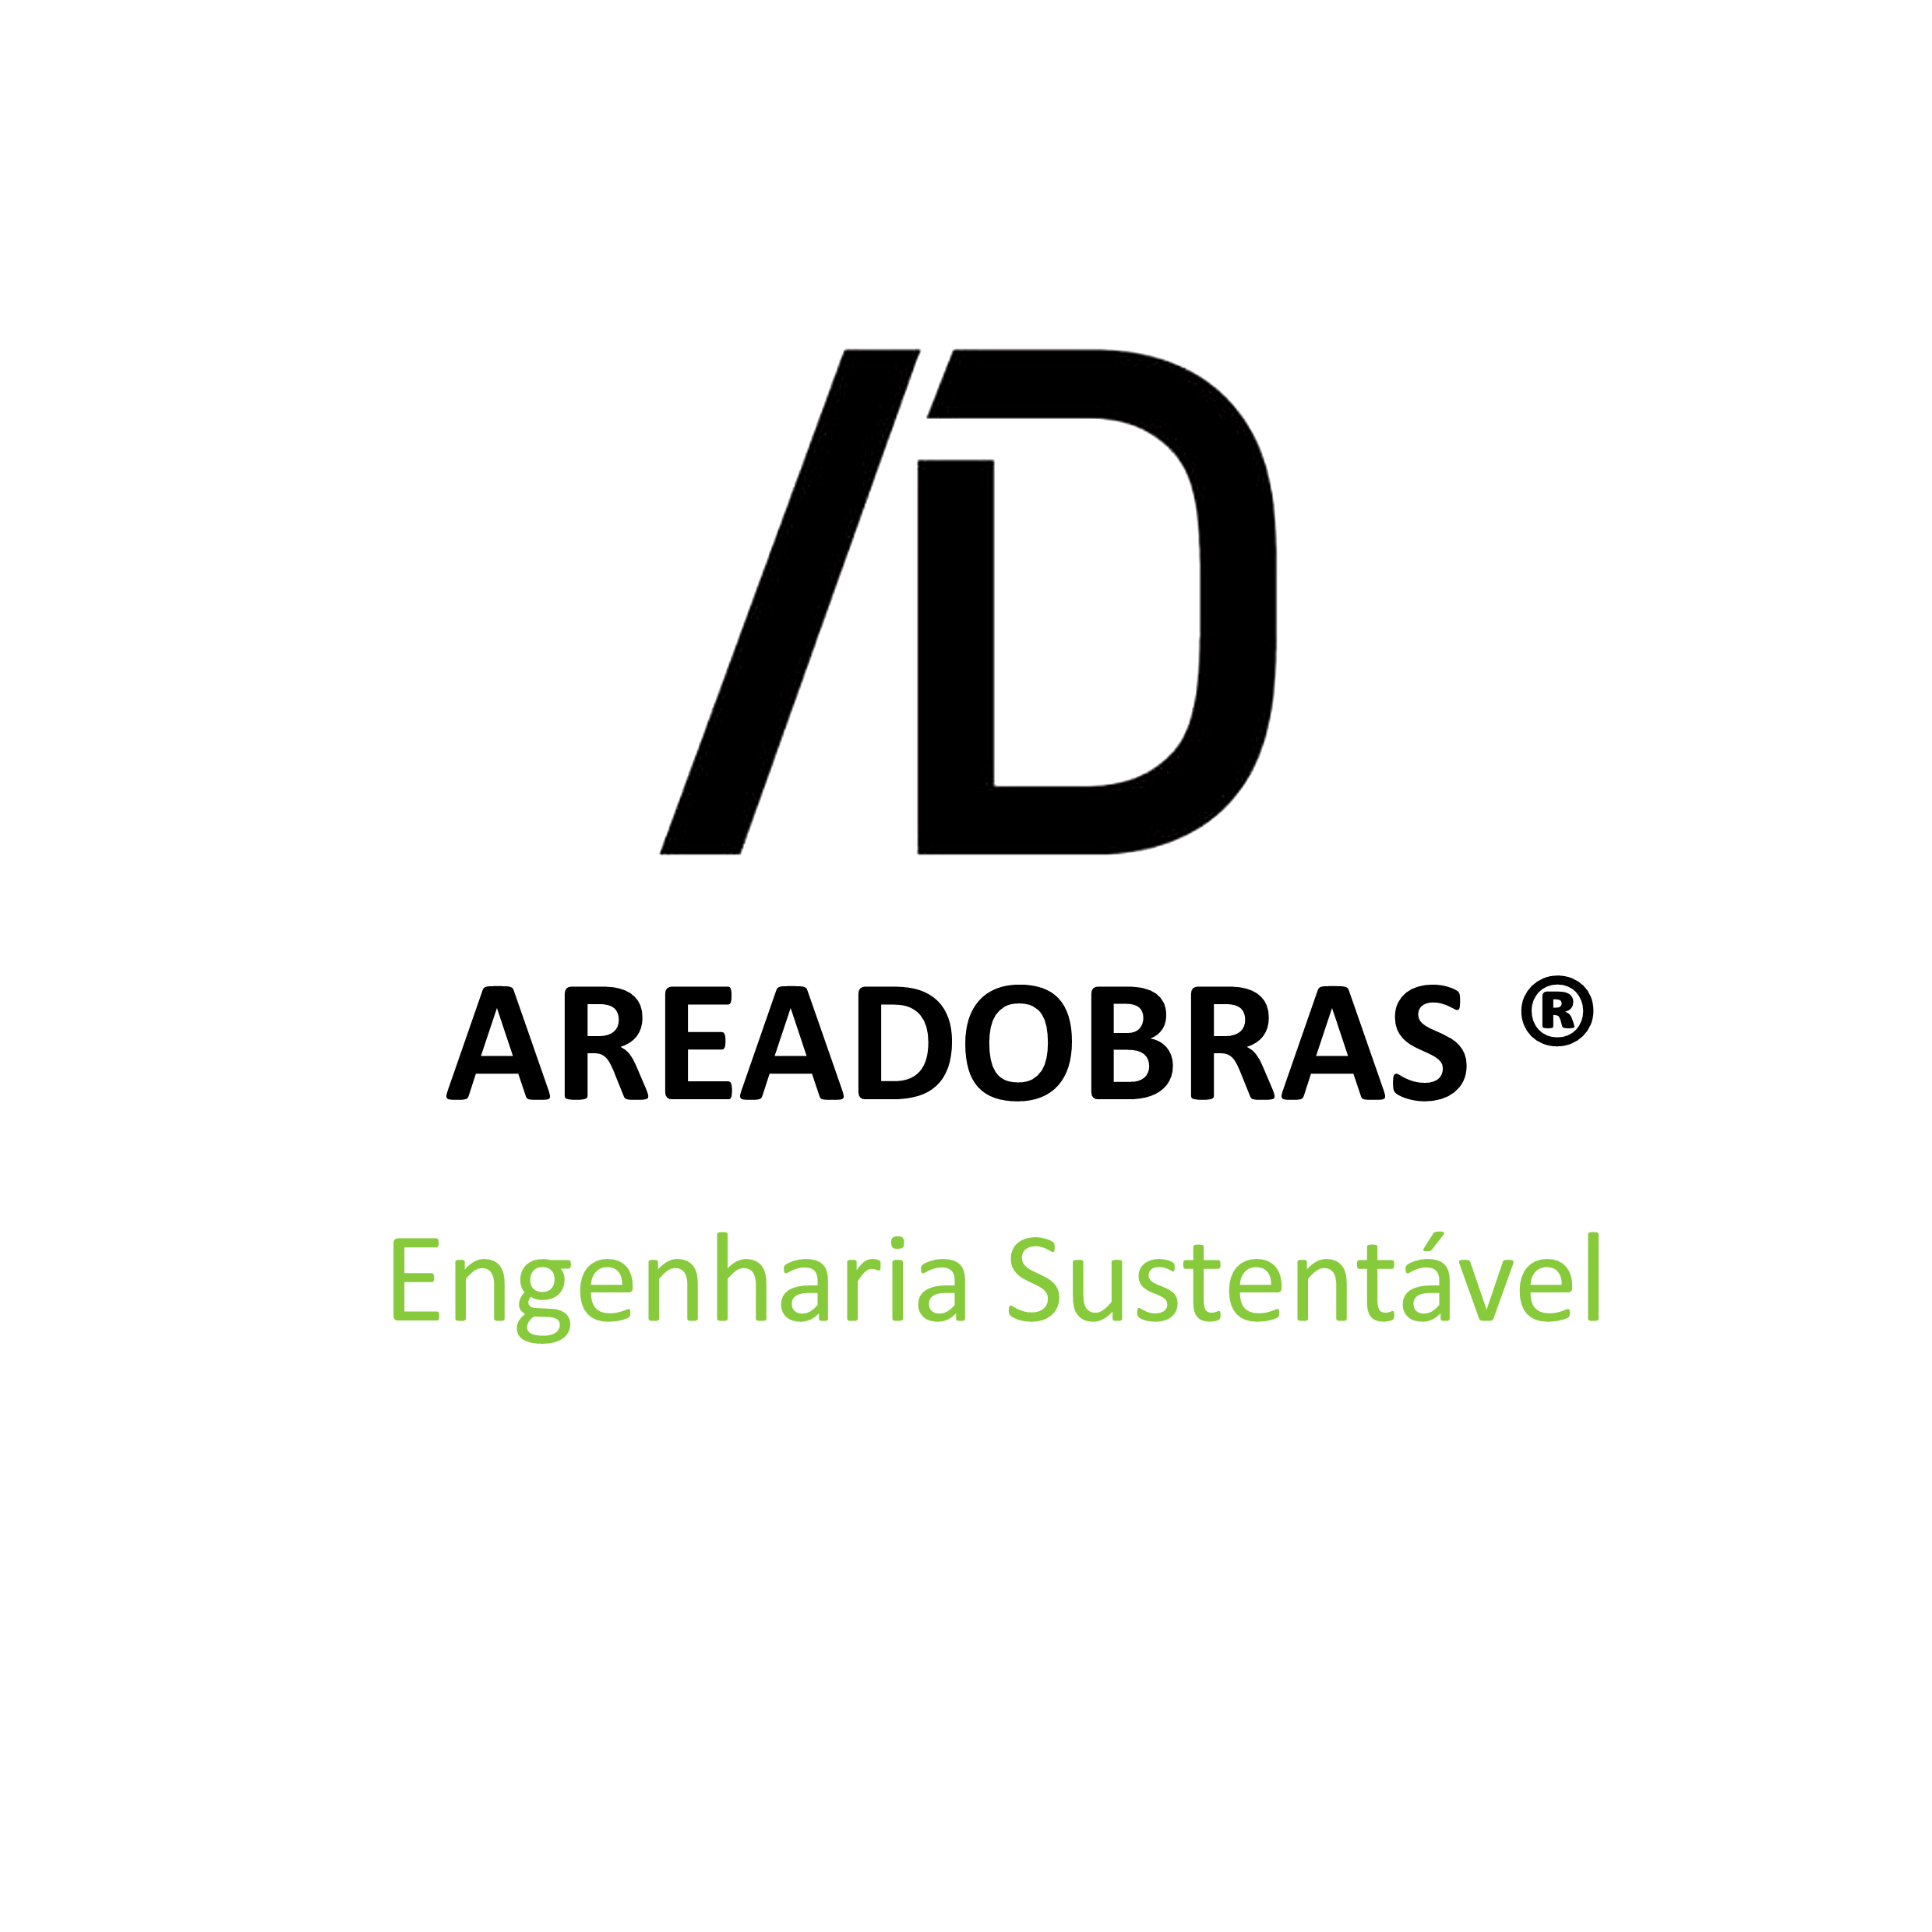 areadobras Post